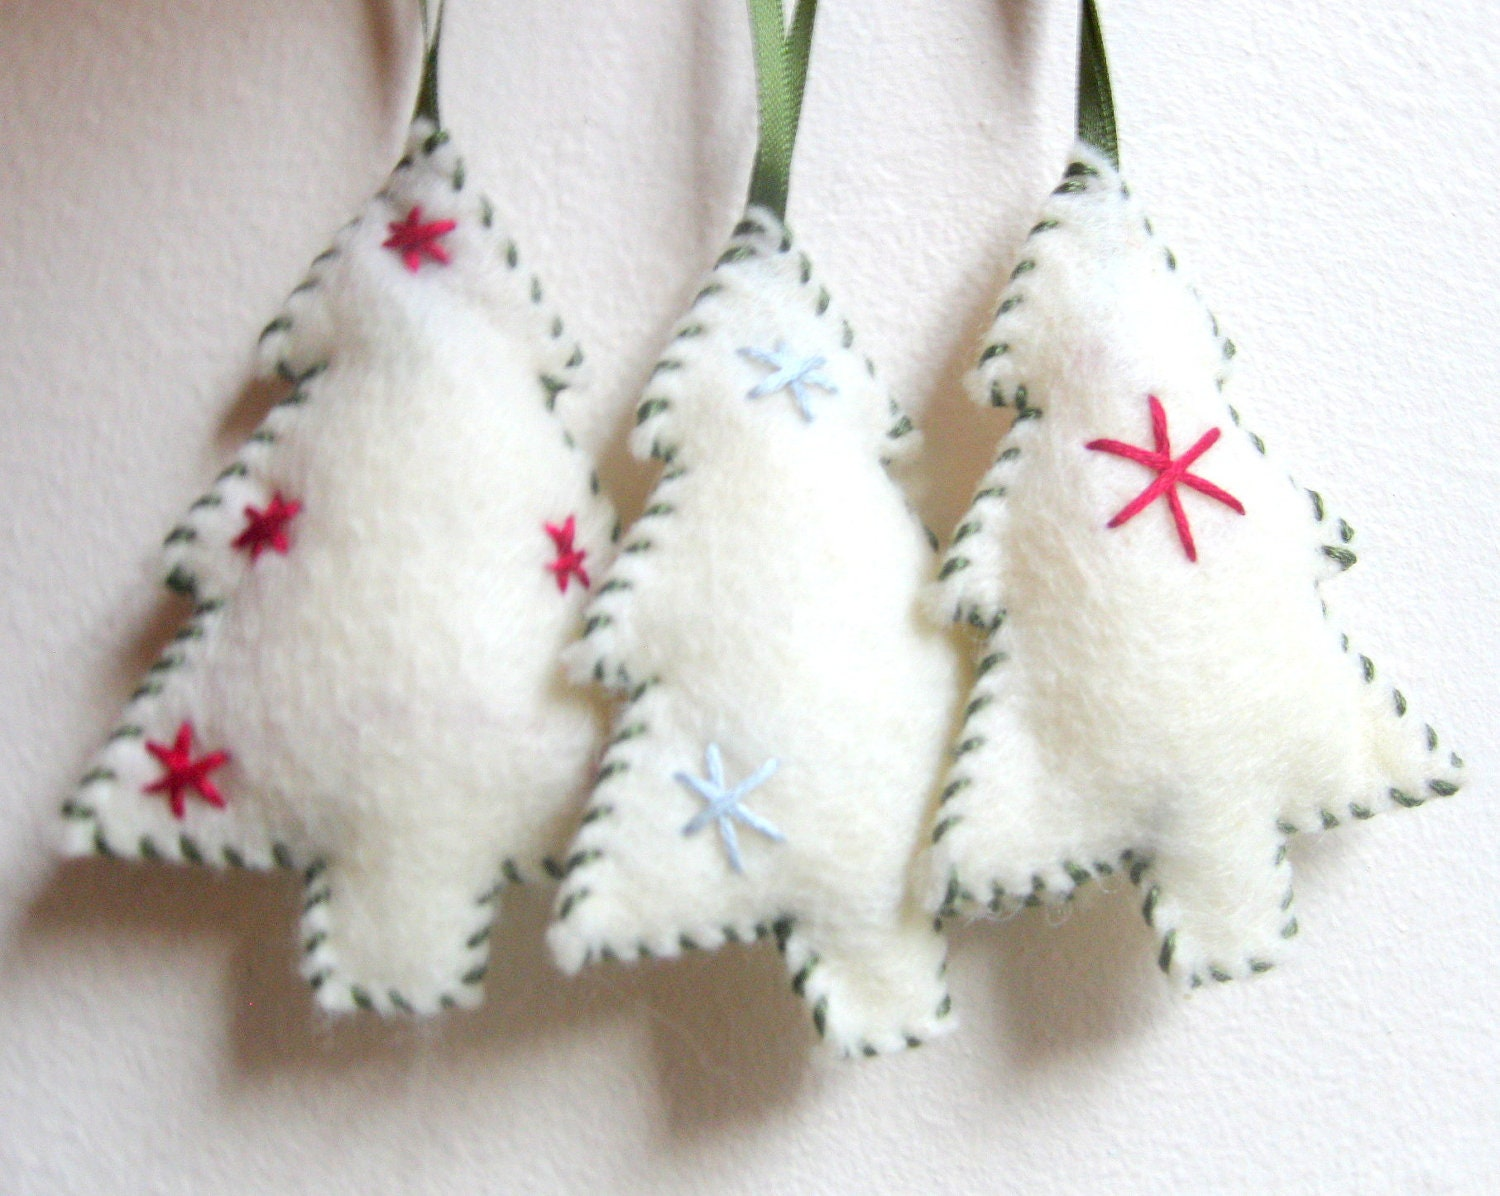 Christmas Ornaments: Homemade, Personalized, Christmas Ornament ...